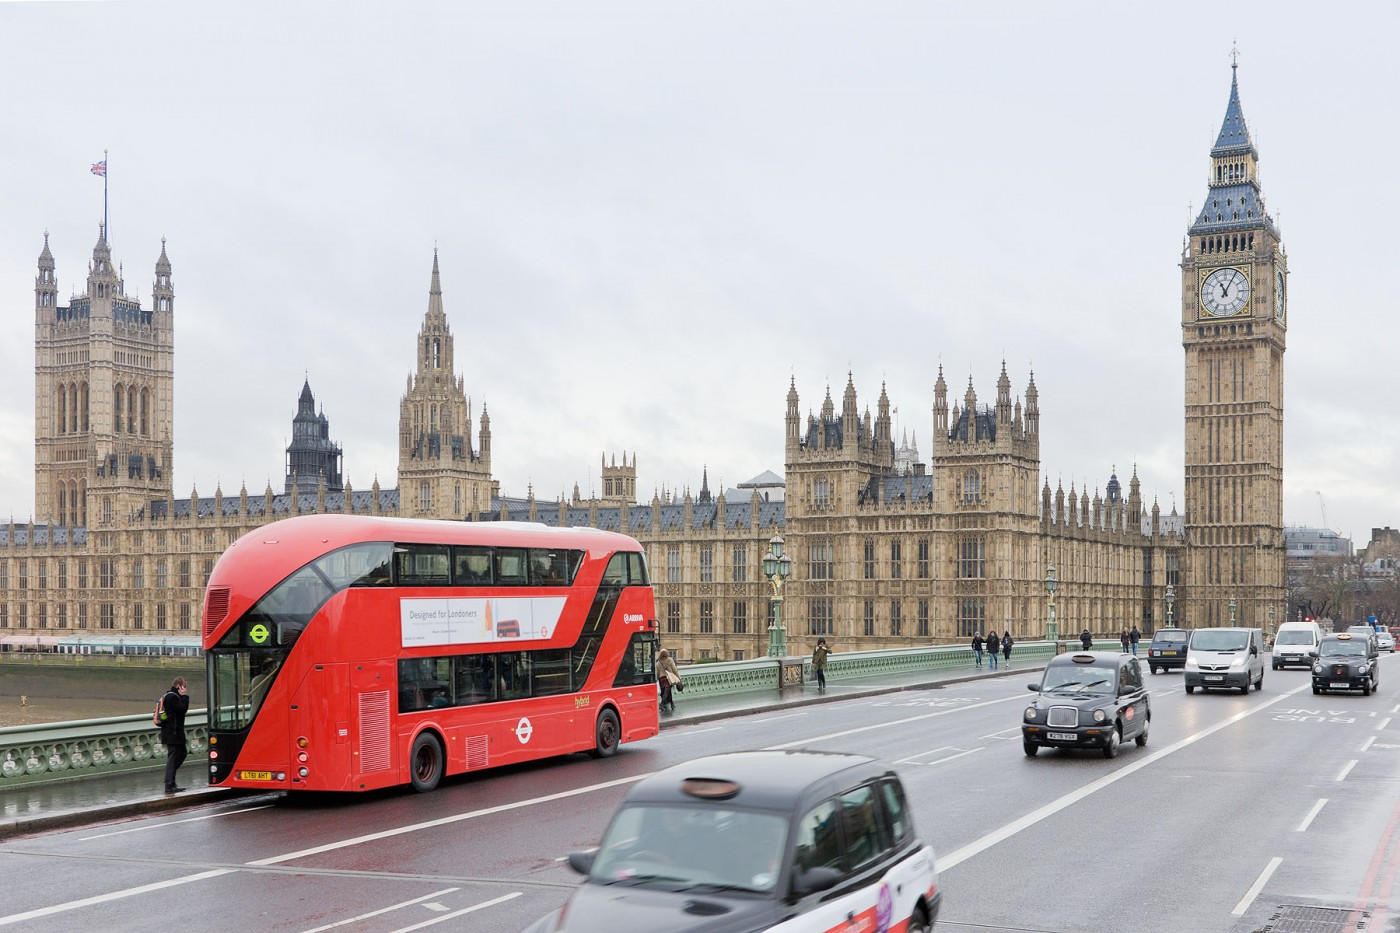 London Bus:First new bus commission for the city of London in 50 years. More fuel efficient, better lighting, strategically placed windows.